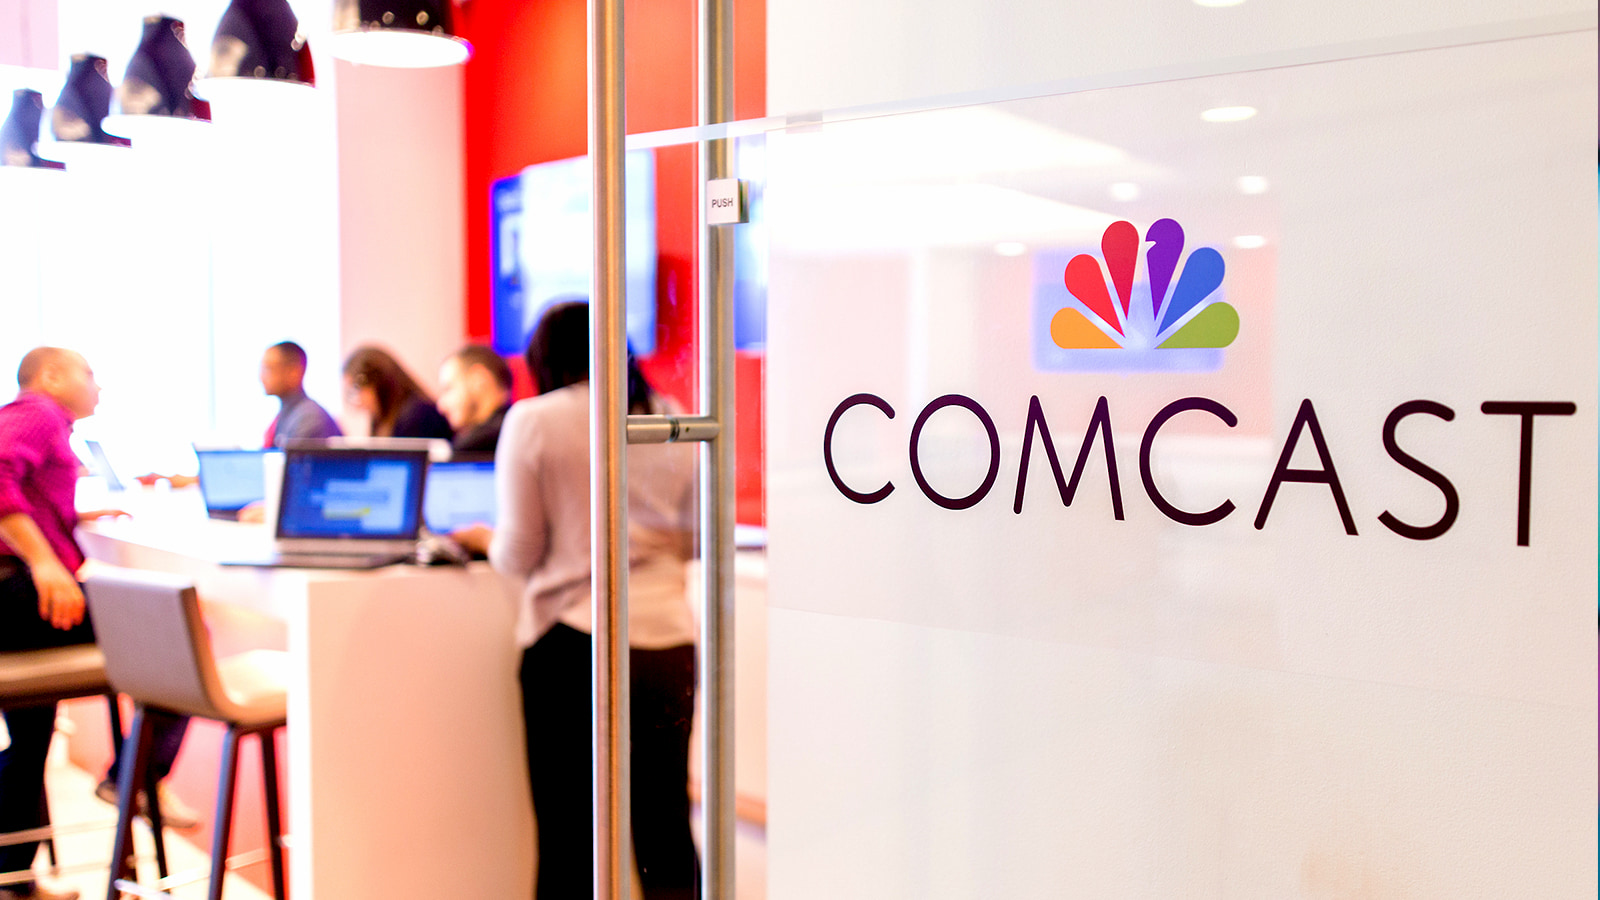 Comcast offers two months of free Internet Essentials for eligible families, opens Wifi hotspots to all